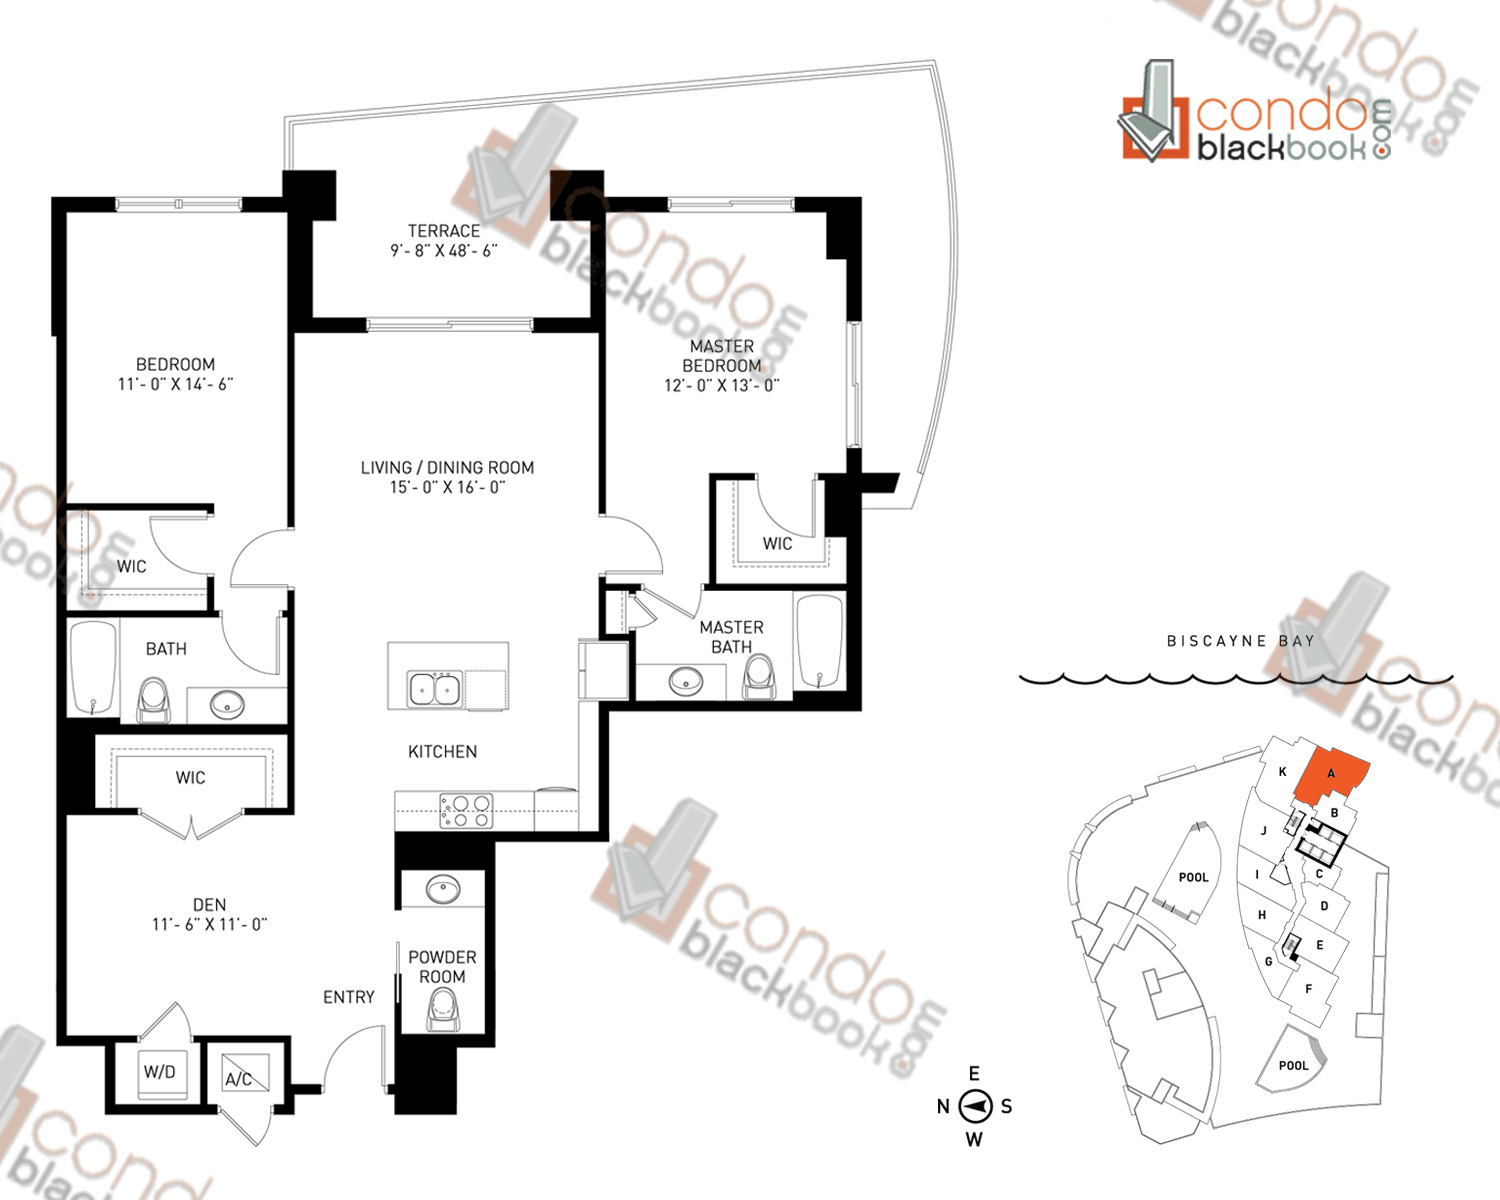 Floor plan for Quantum on the Bay Edgewater Miami, model Residence_A, line South Tower - 01, 2/2.5+Den bedrooms, 1,378 sq ft